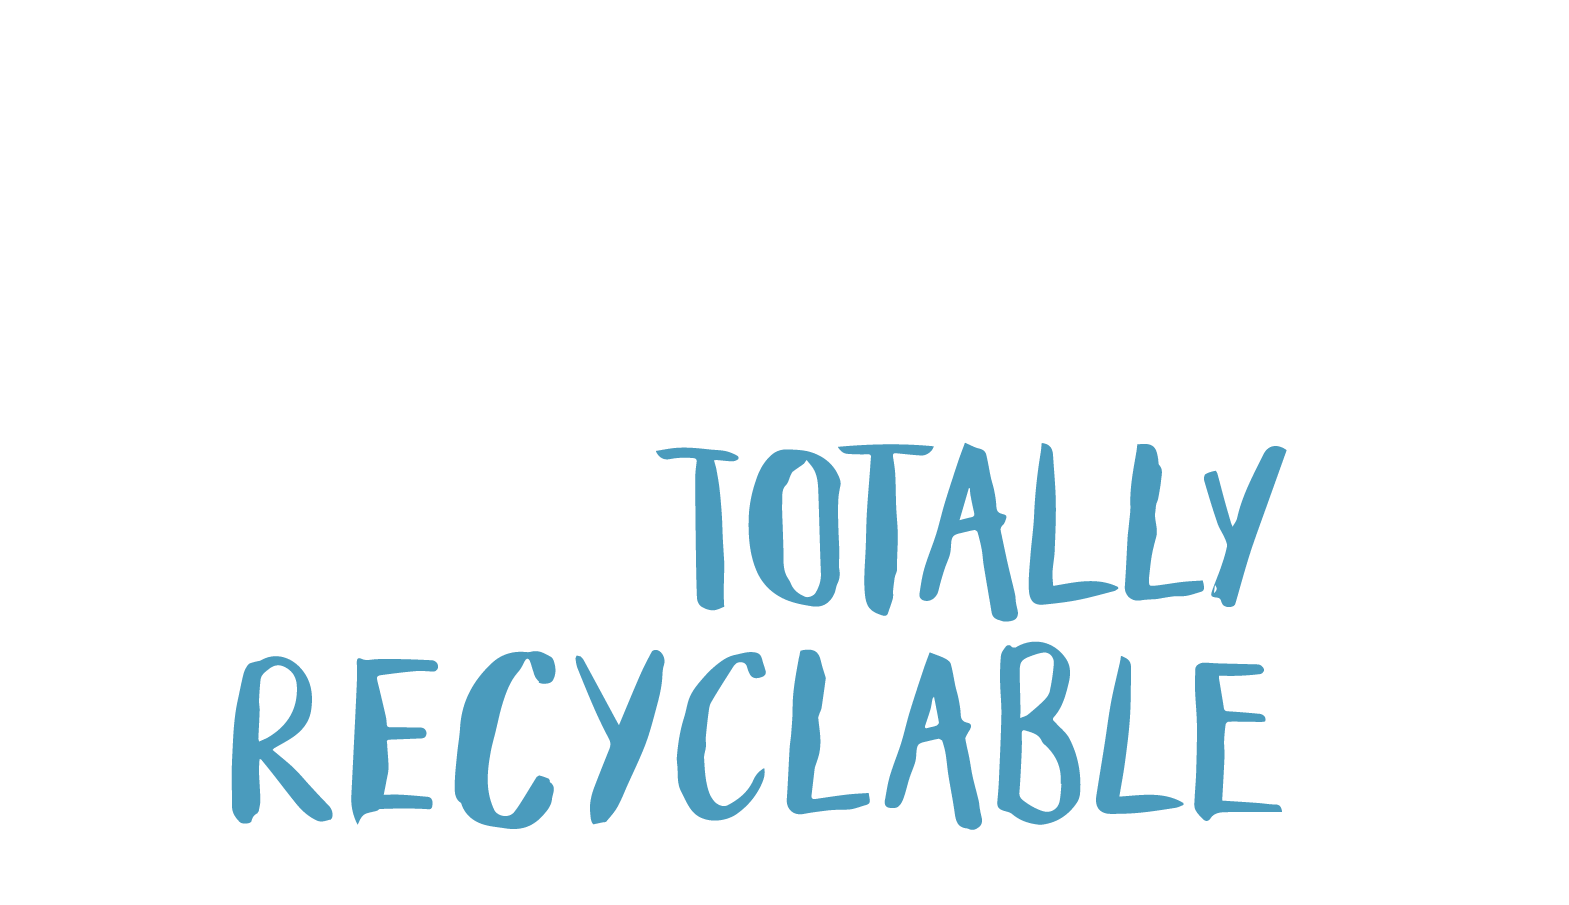 We're ZERO to landfill and totally recyclable